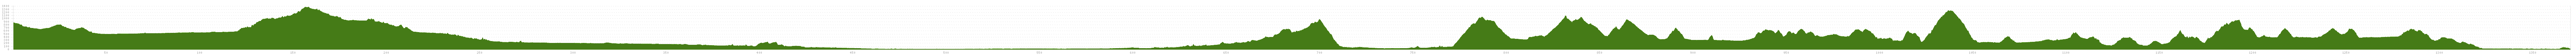 Elevation profile Cycle Tour Flecken nach Assisi